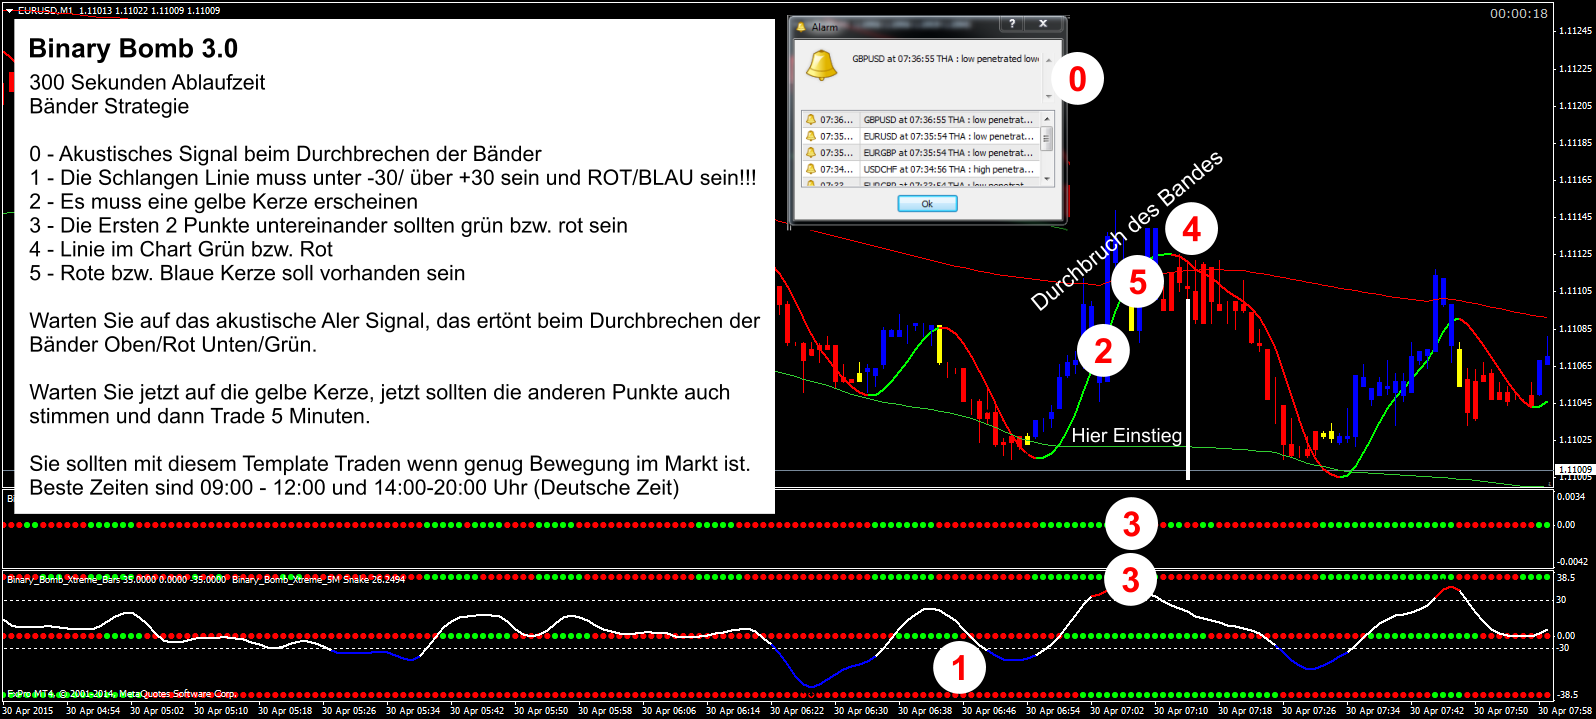 1 trades binare optionen grau